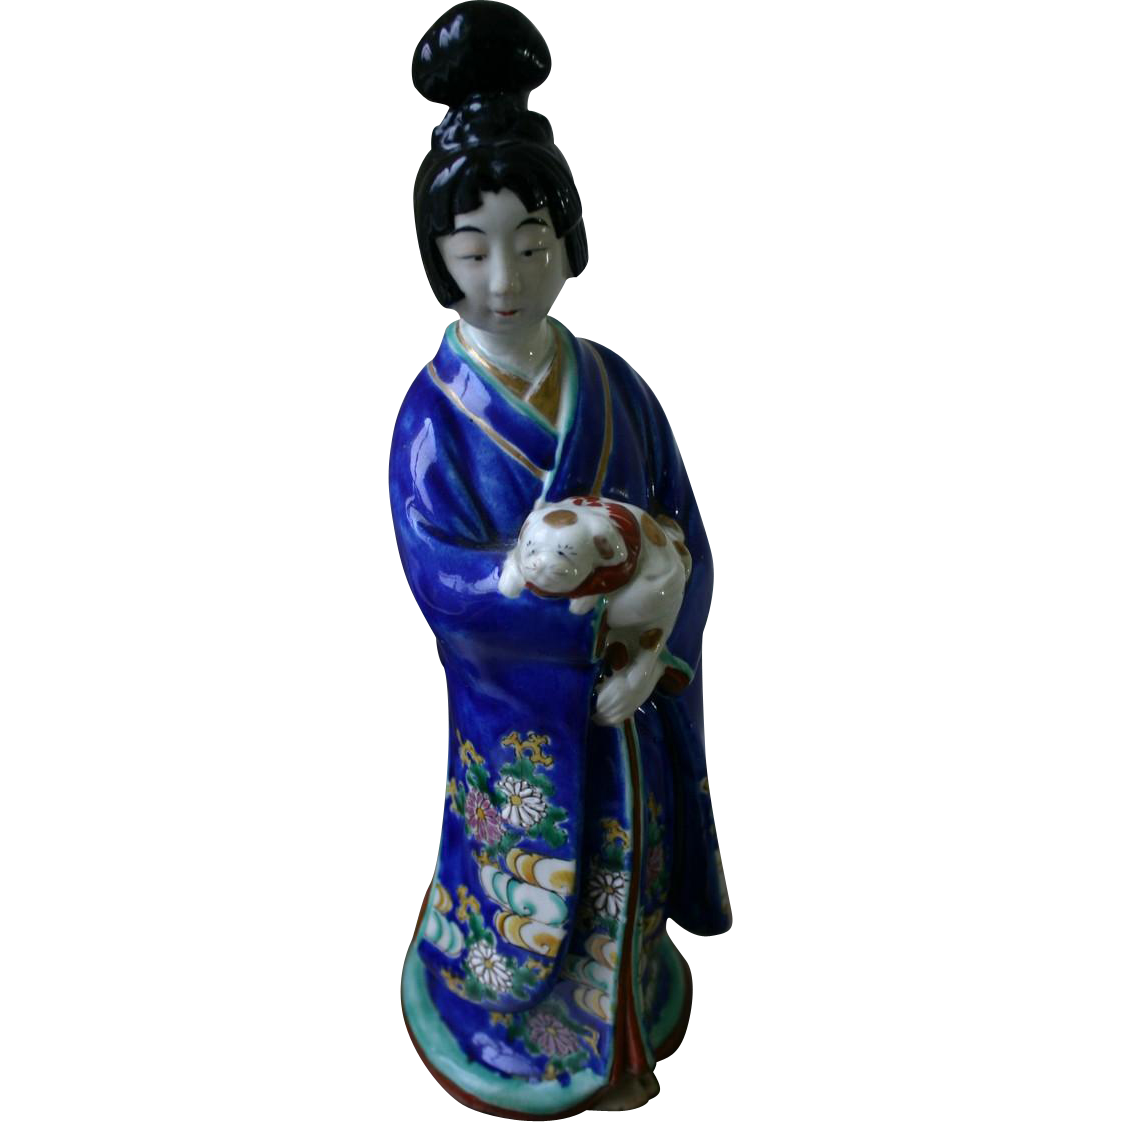 Very Rare Antique Japanese Kutani Porcelain Figurine of Geisha Girl with Dog